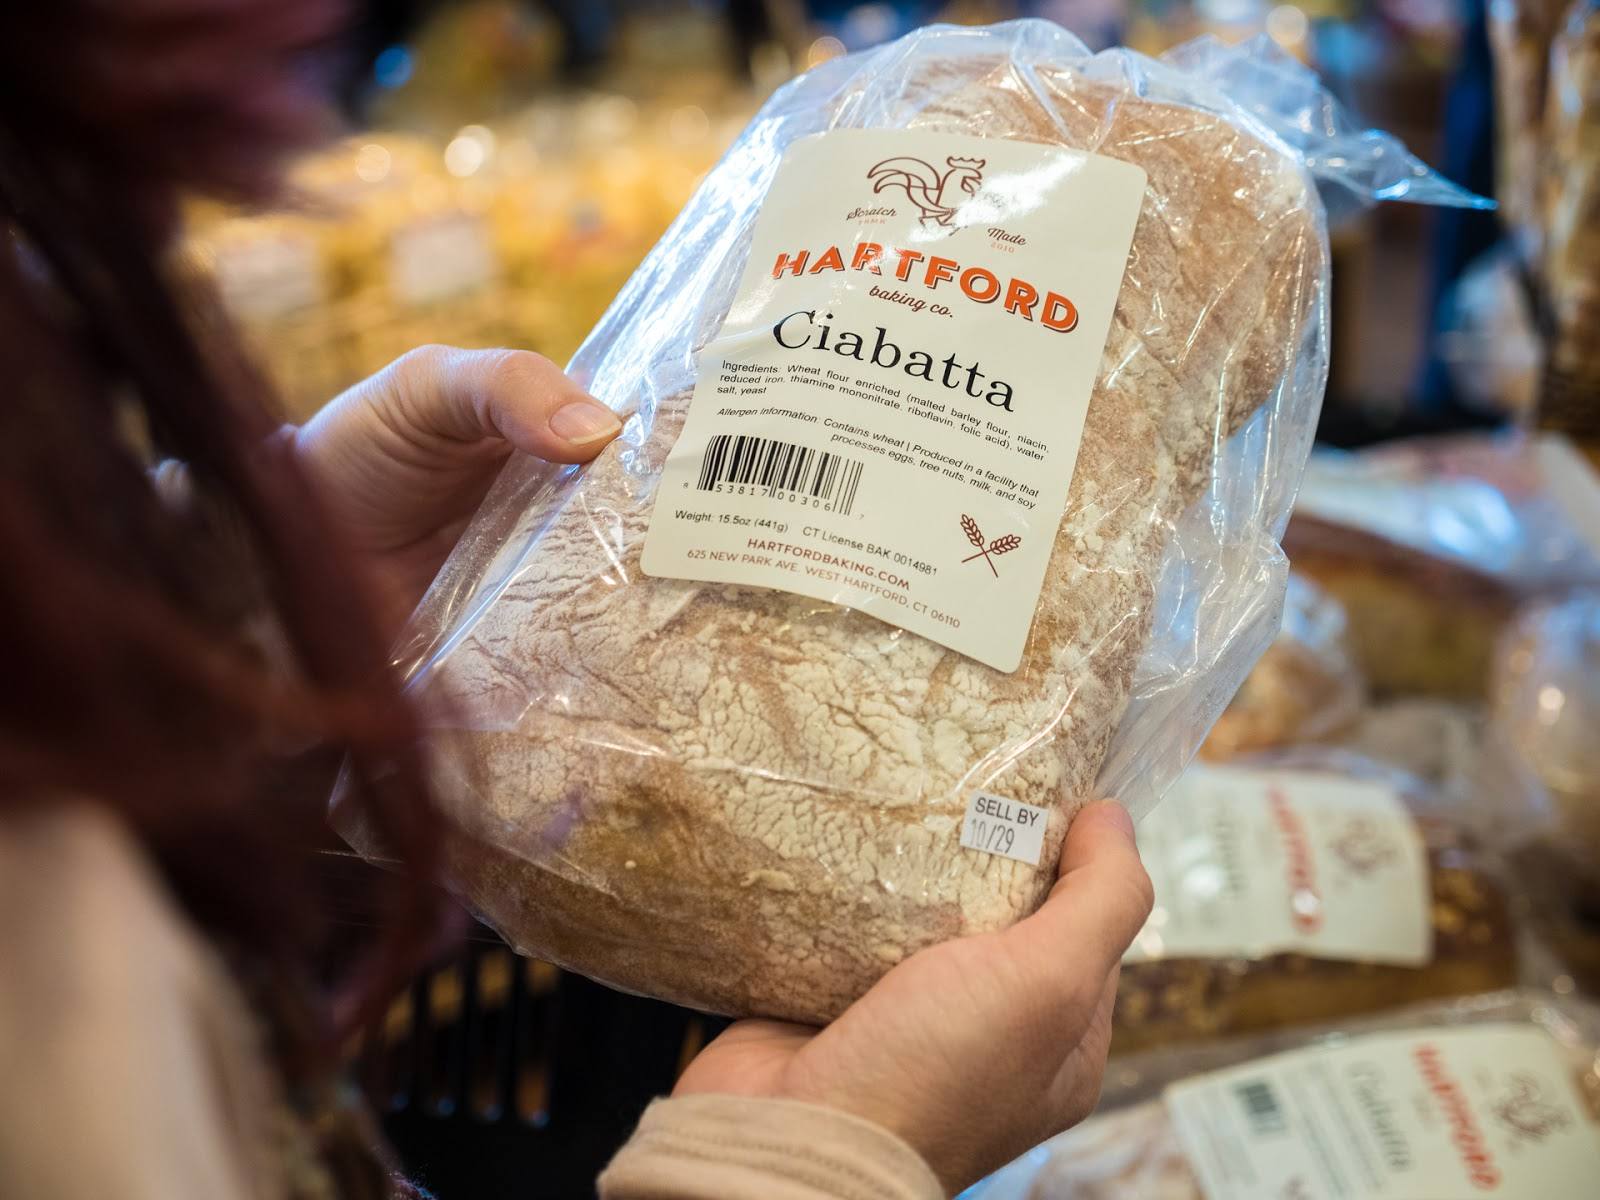 Local Food Rocks: Hartford Baking Co. at Avon Prime Meats